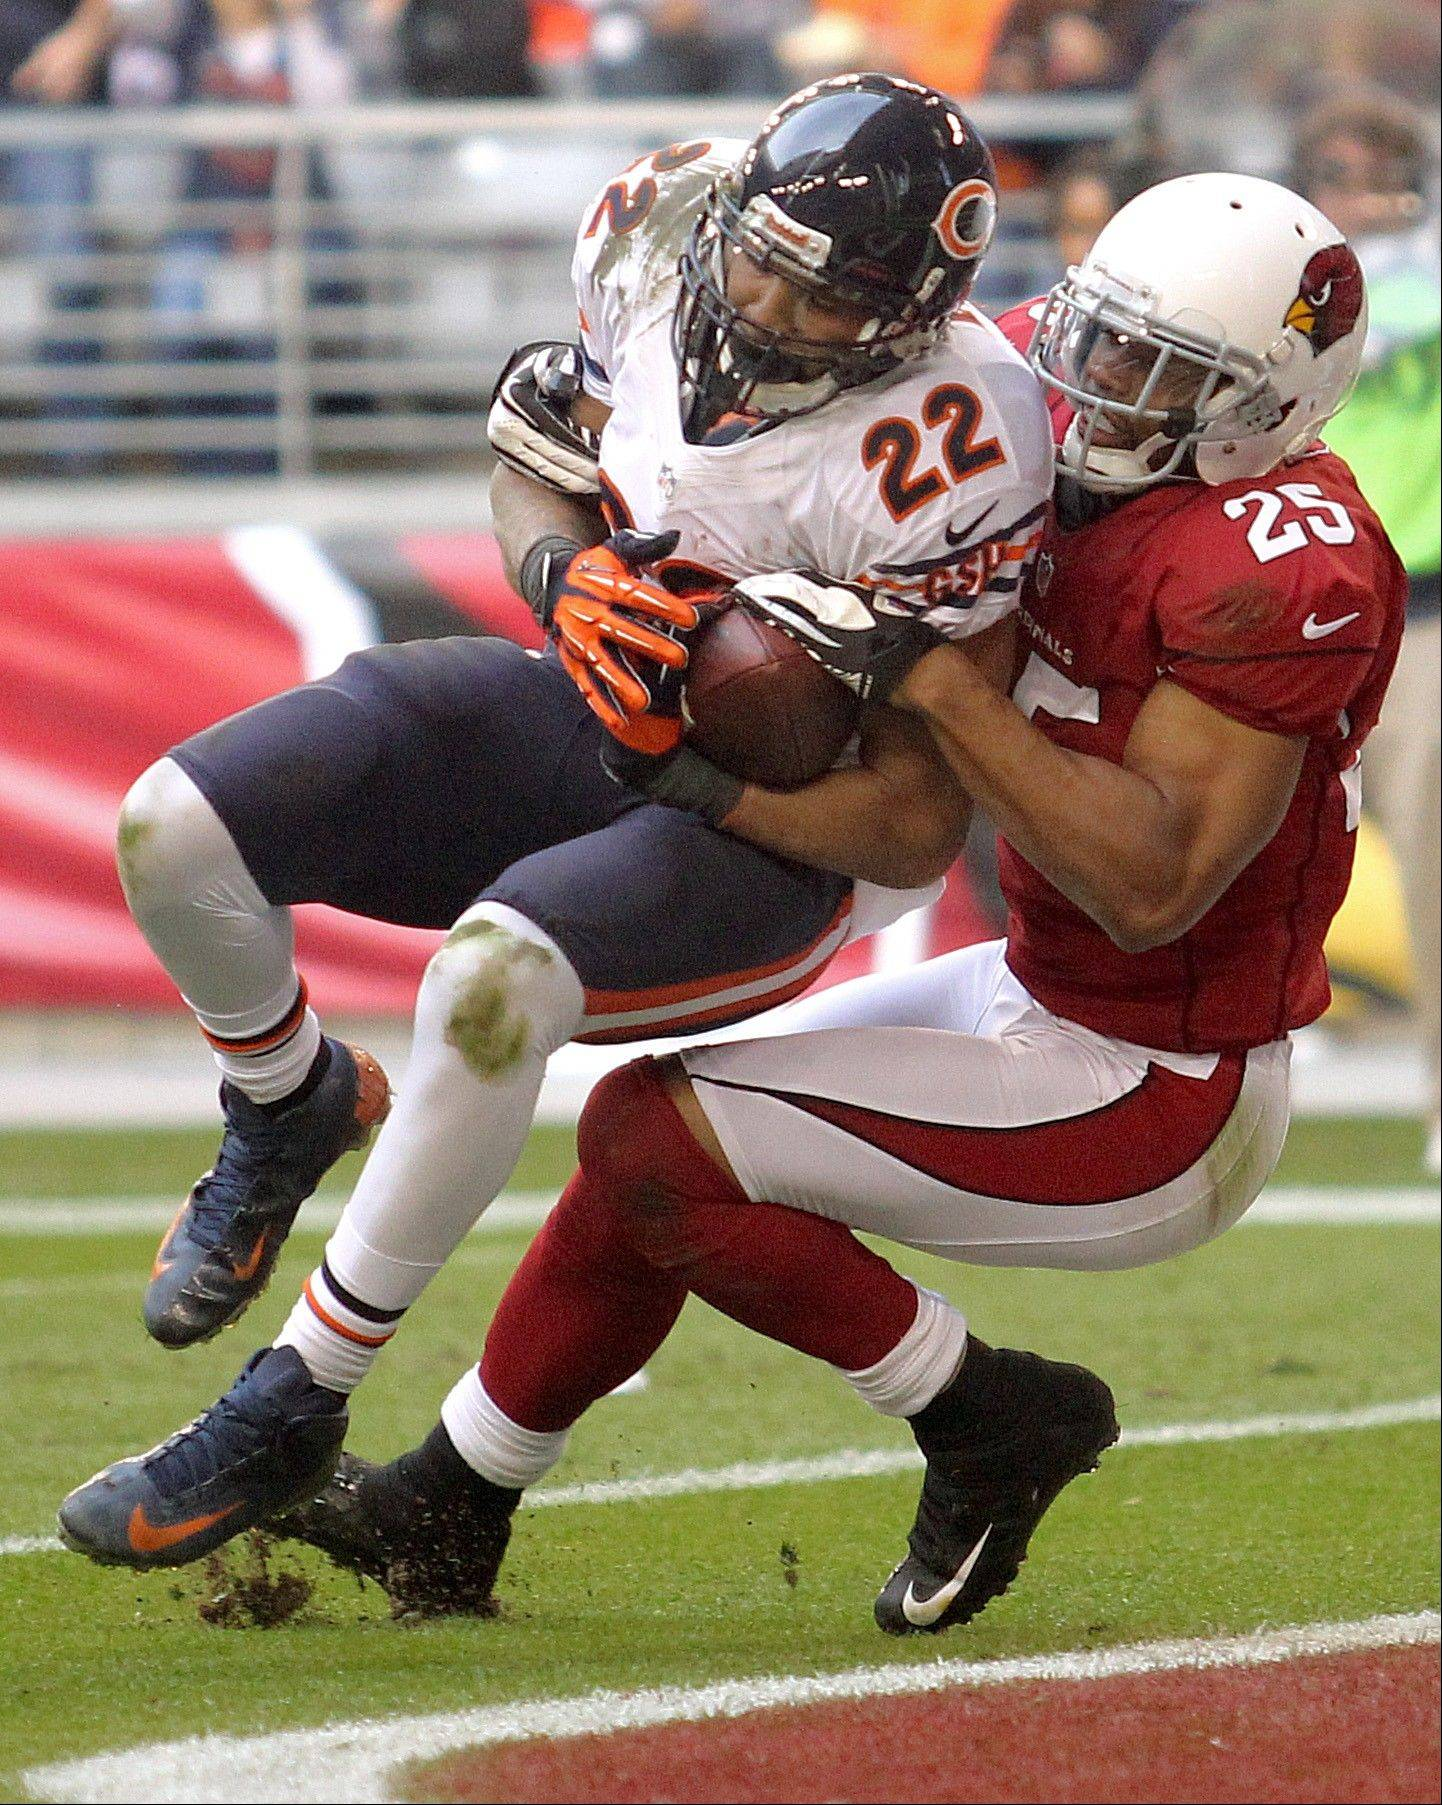 In this game against the Cardinals, the Bears' Matt Forte (22) scores 1 of his 6 TDs last season.